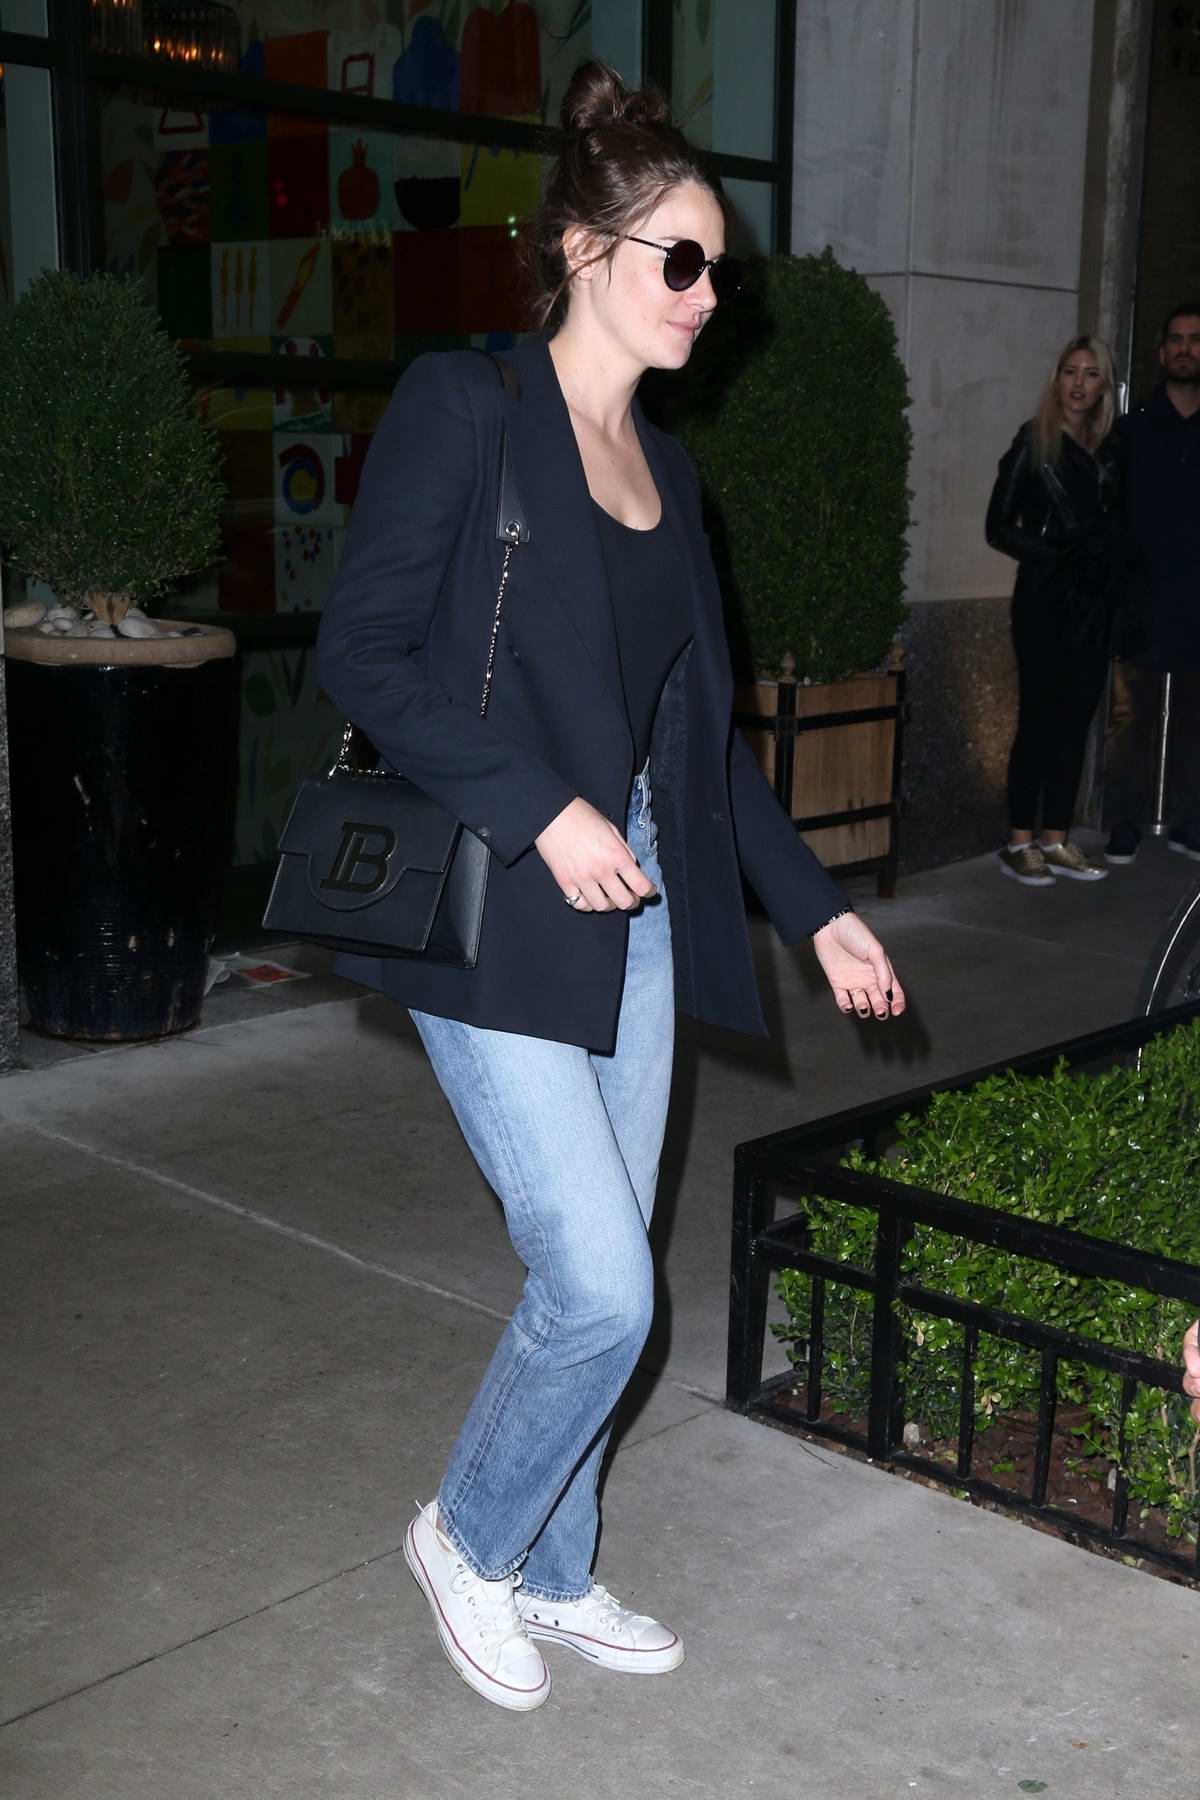 Shailene Woodley steps out in a blue blazer and matching denim in New York City